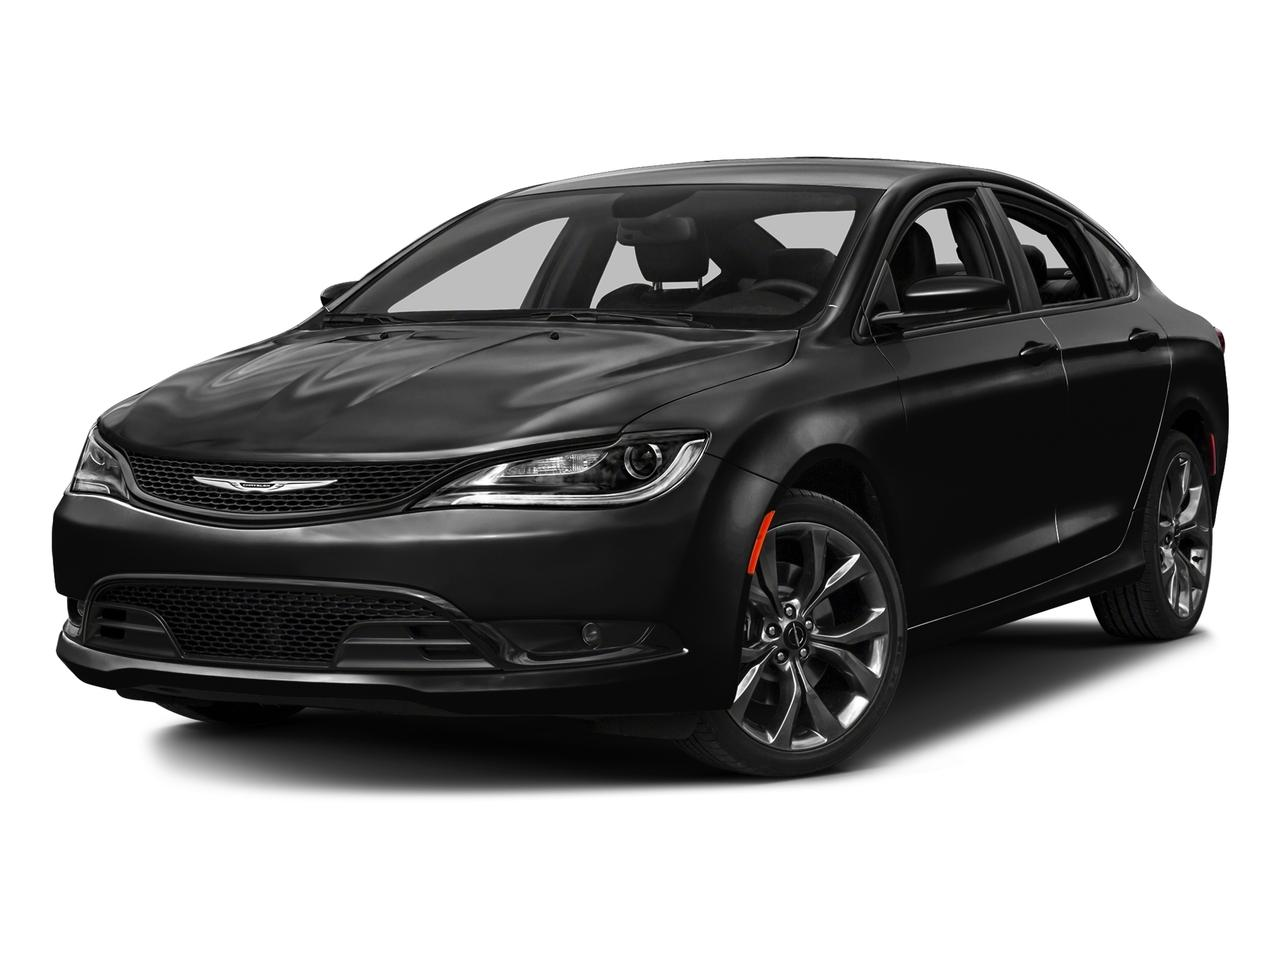 2016 Chrysler 200 Vehicle Photo in San Antonio, TX 78257